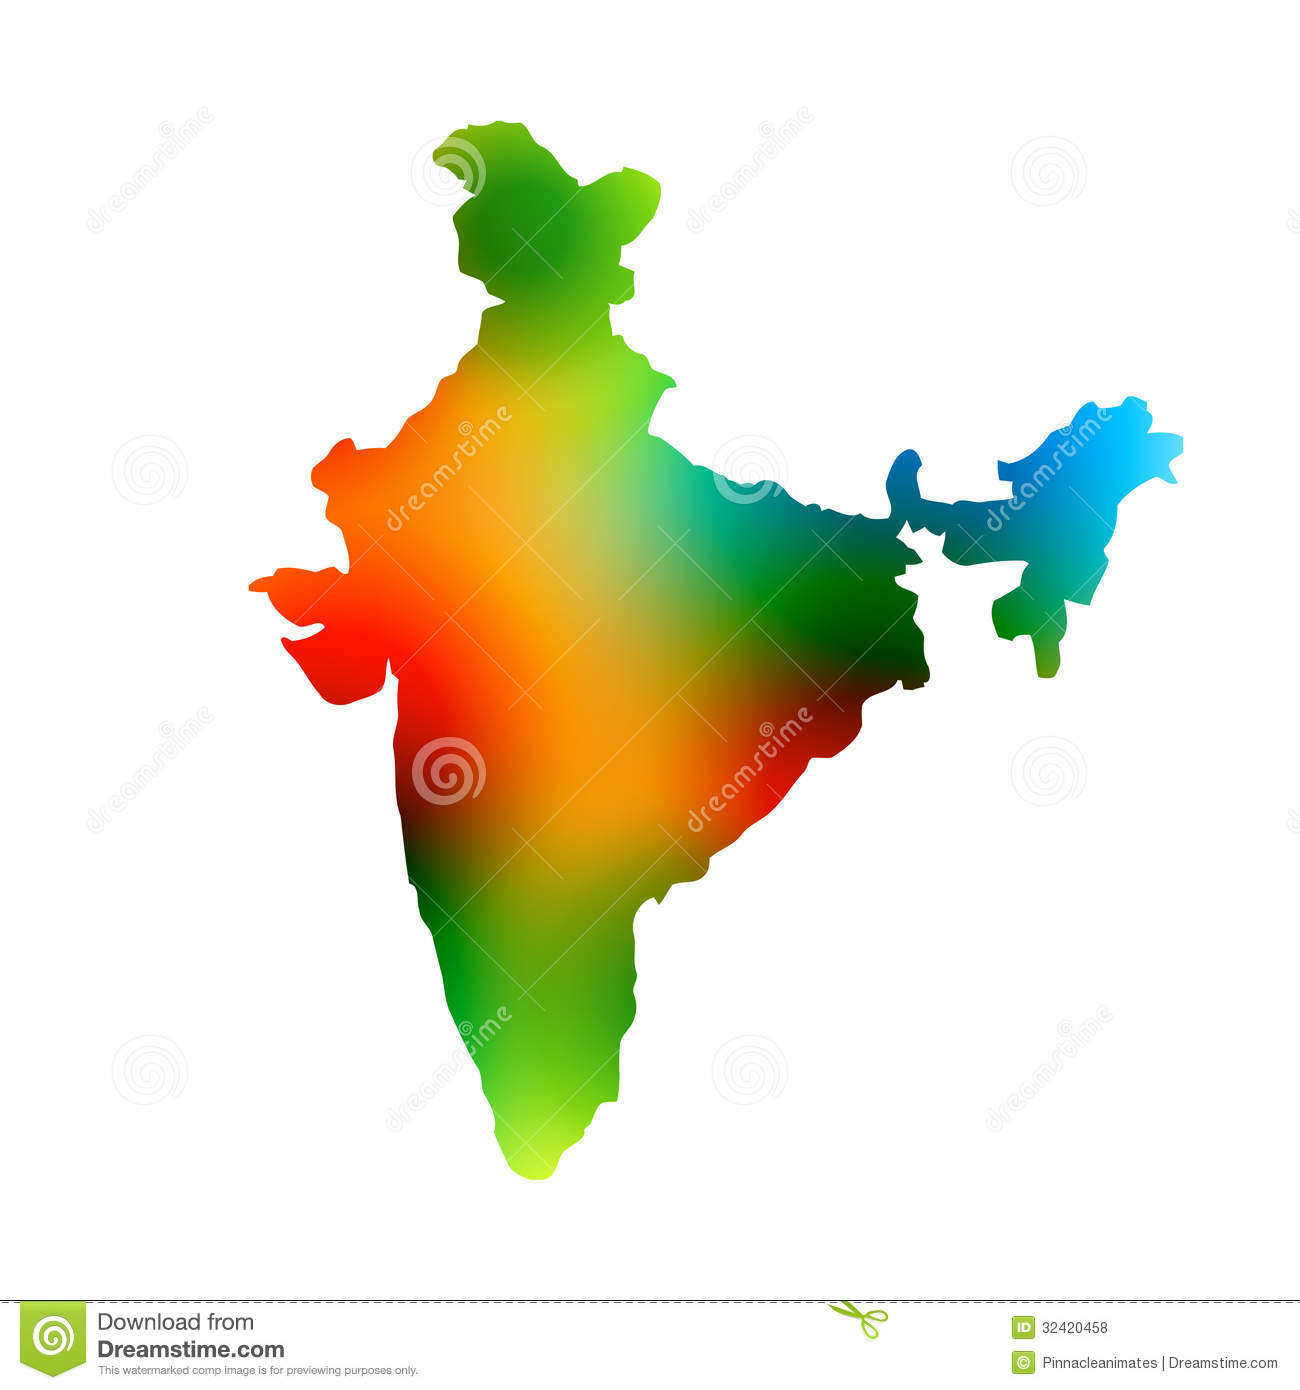 Colorful map of india Colorful map of